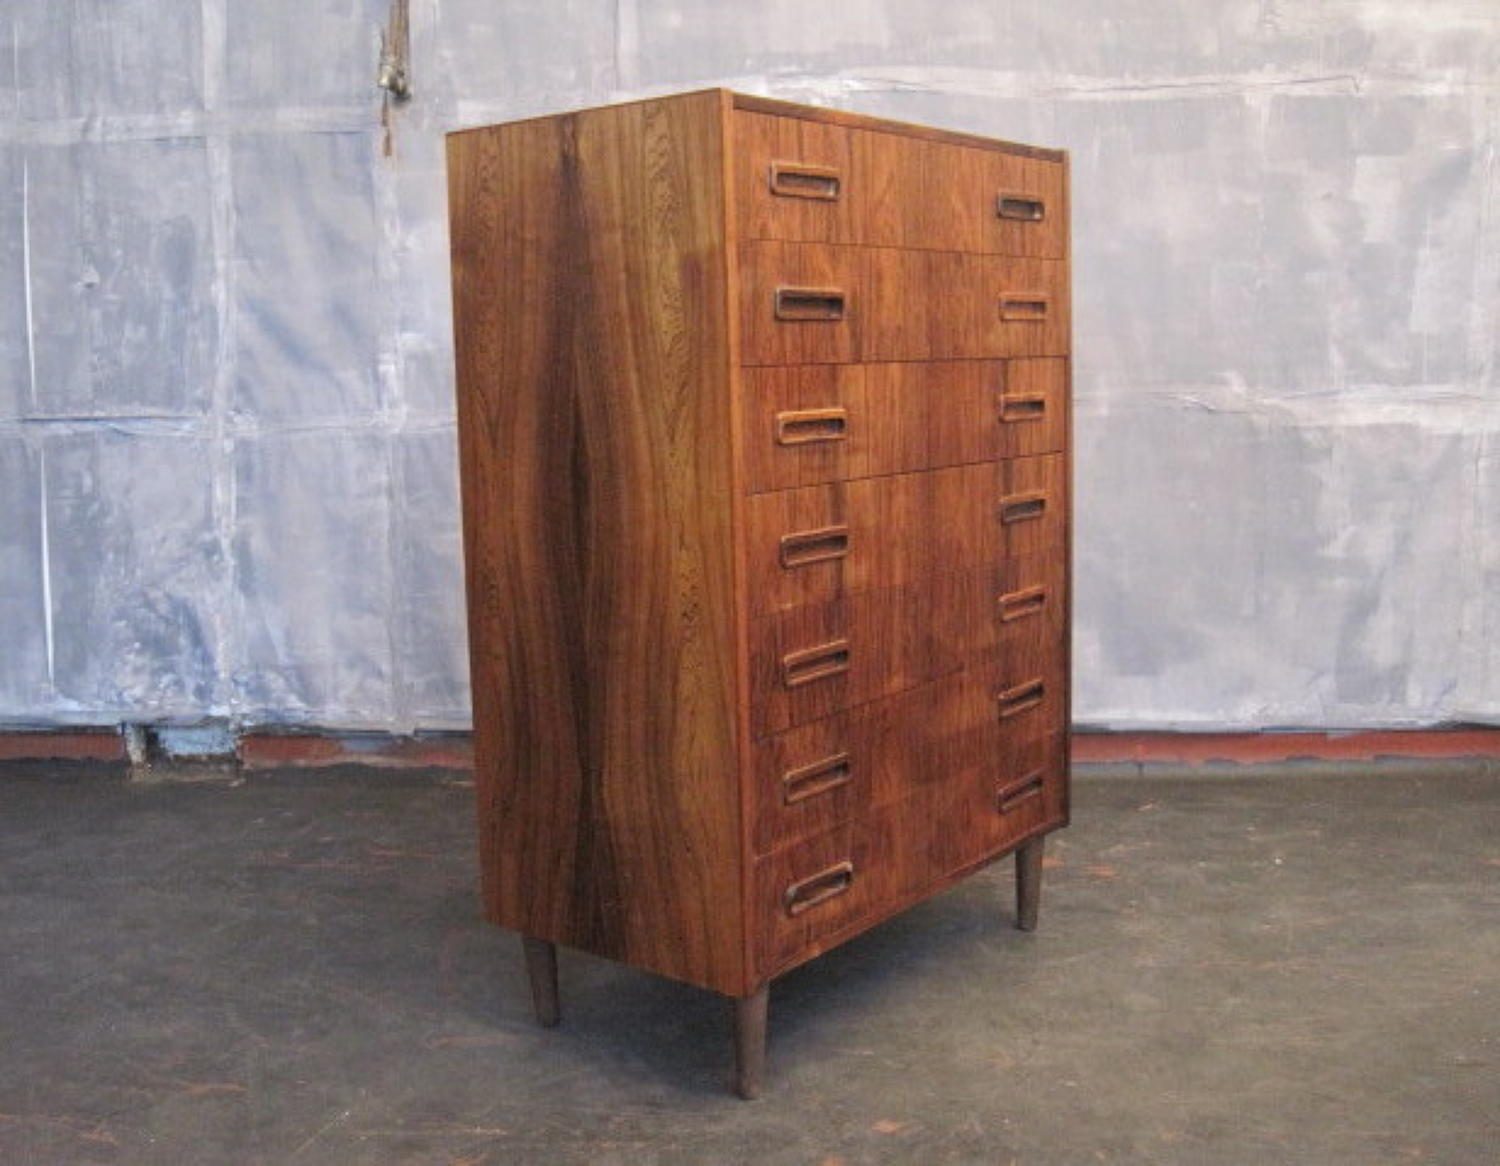 Rosewood chest of drawers by Westergaard